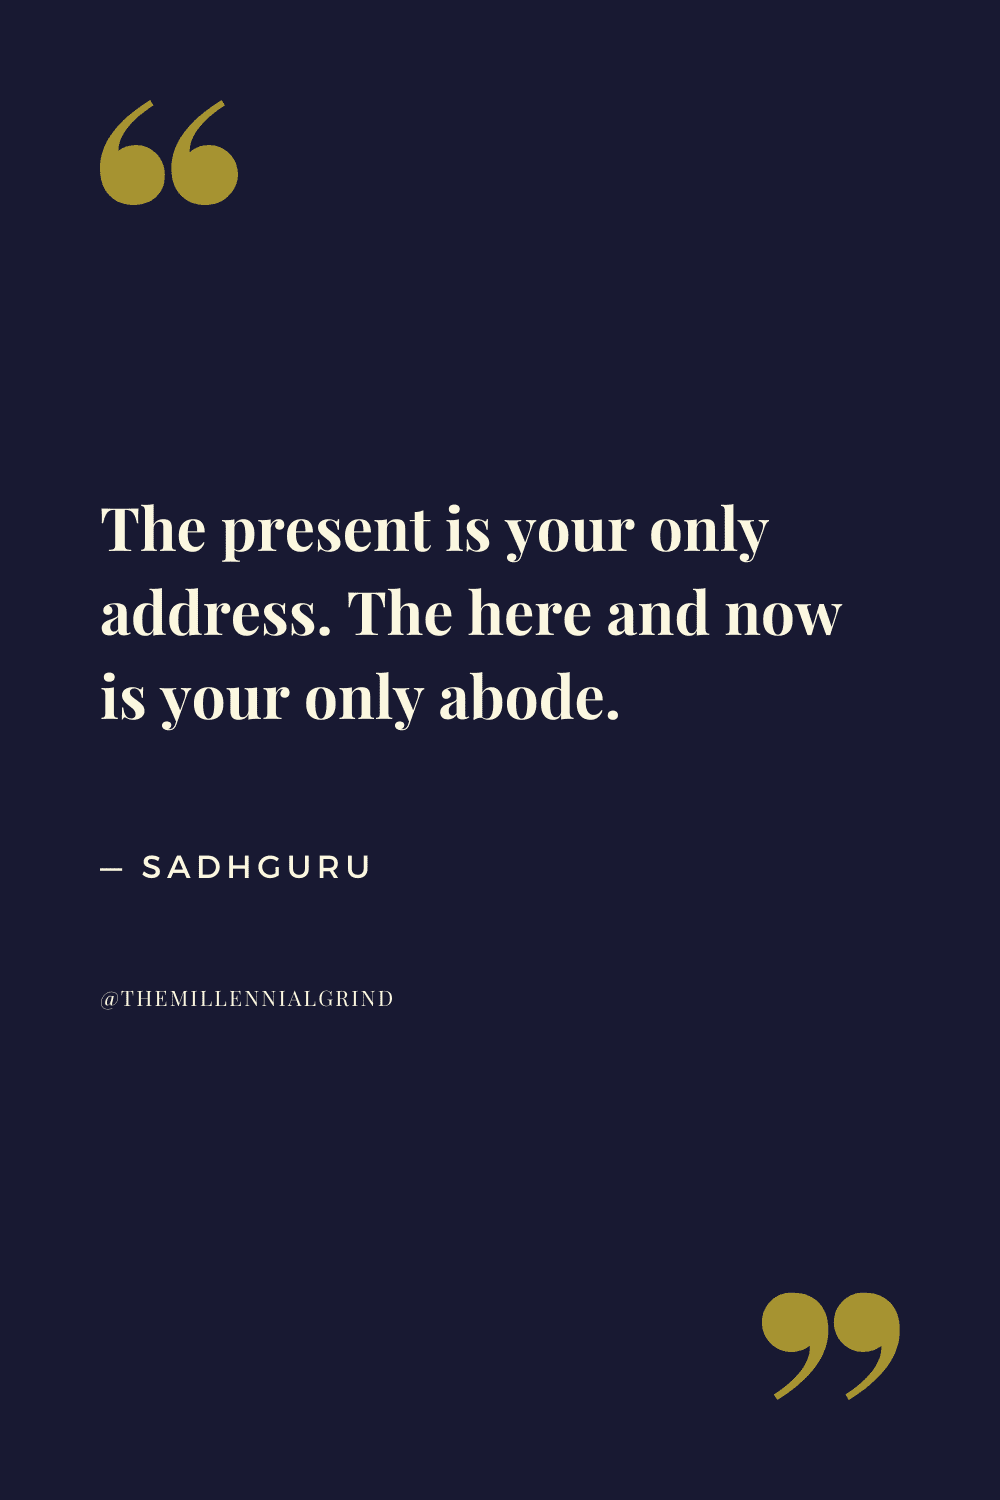 The present is your only address. The here and now is your only abode.